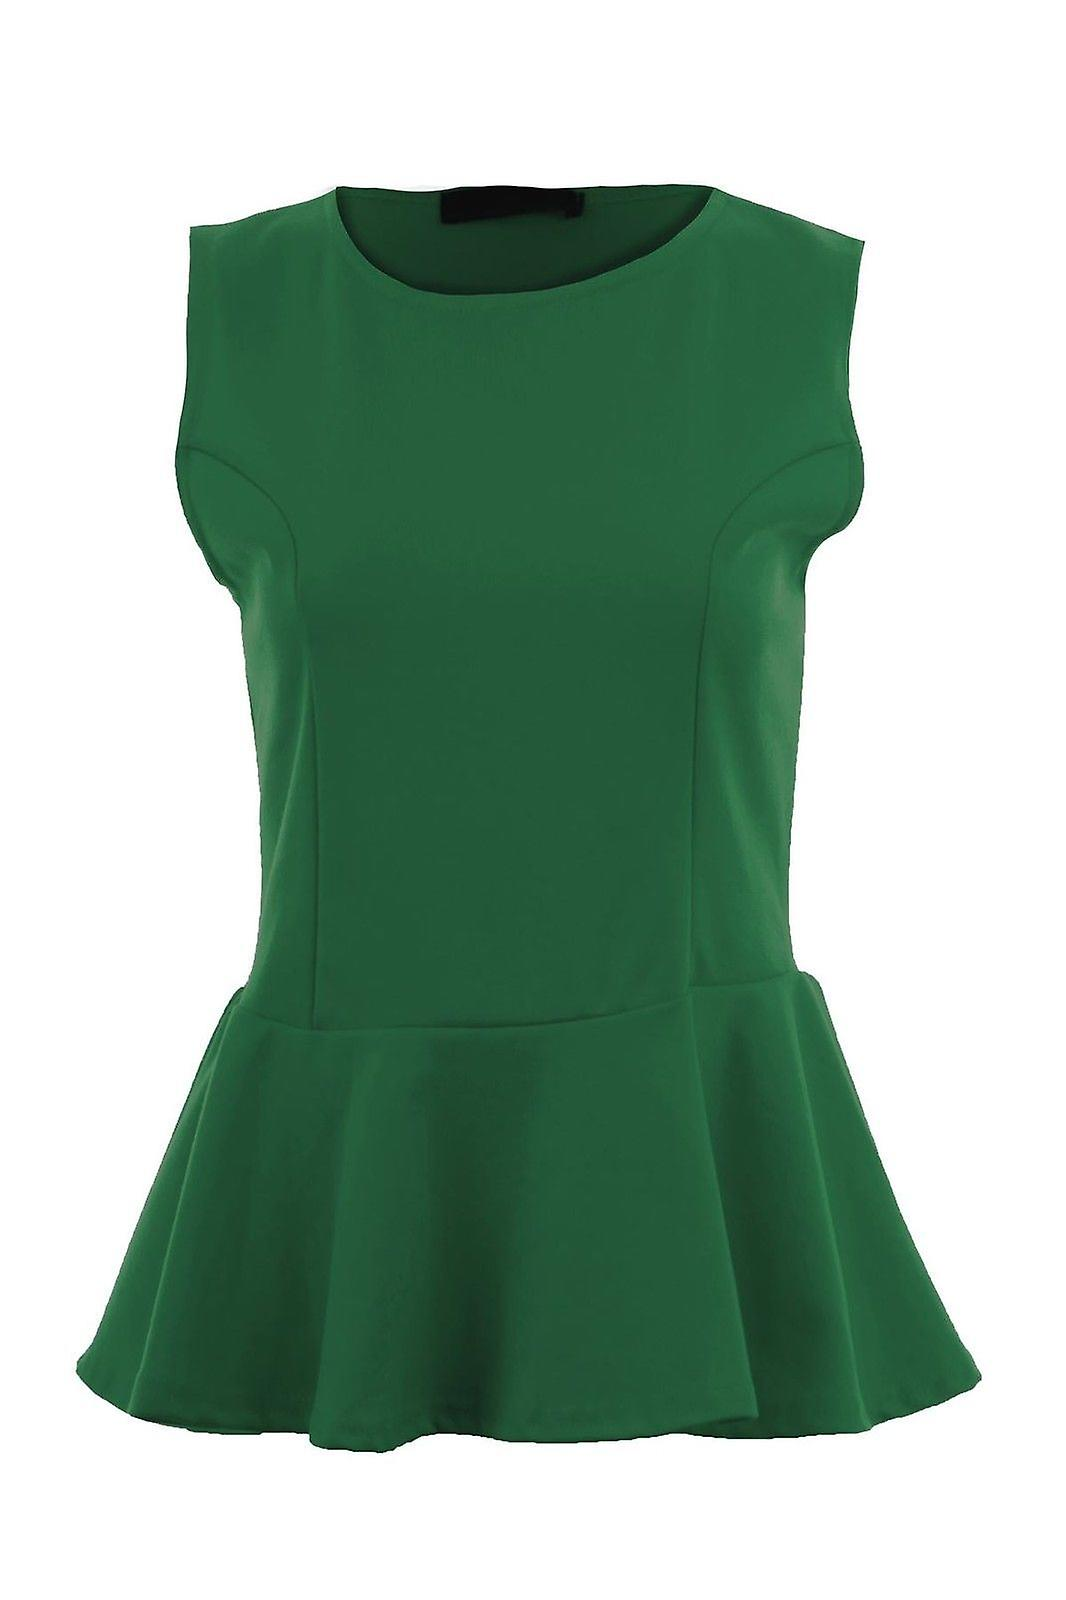 Ladies Plain Peplum Scoop Neck Sleeveless Frill Shift T Shirt Vest Women's Top